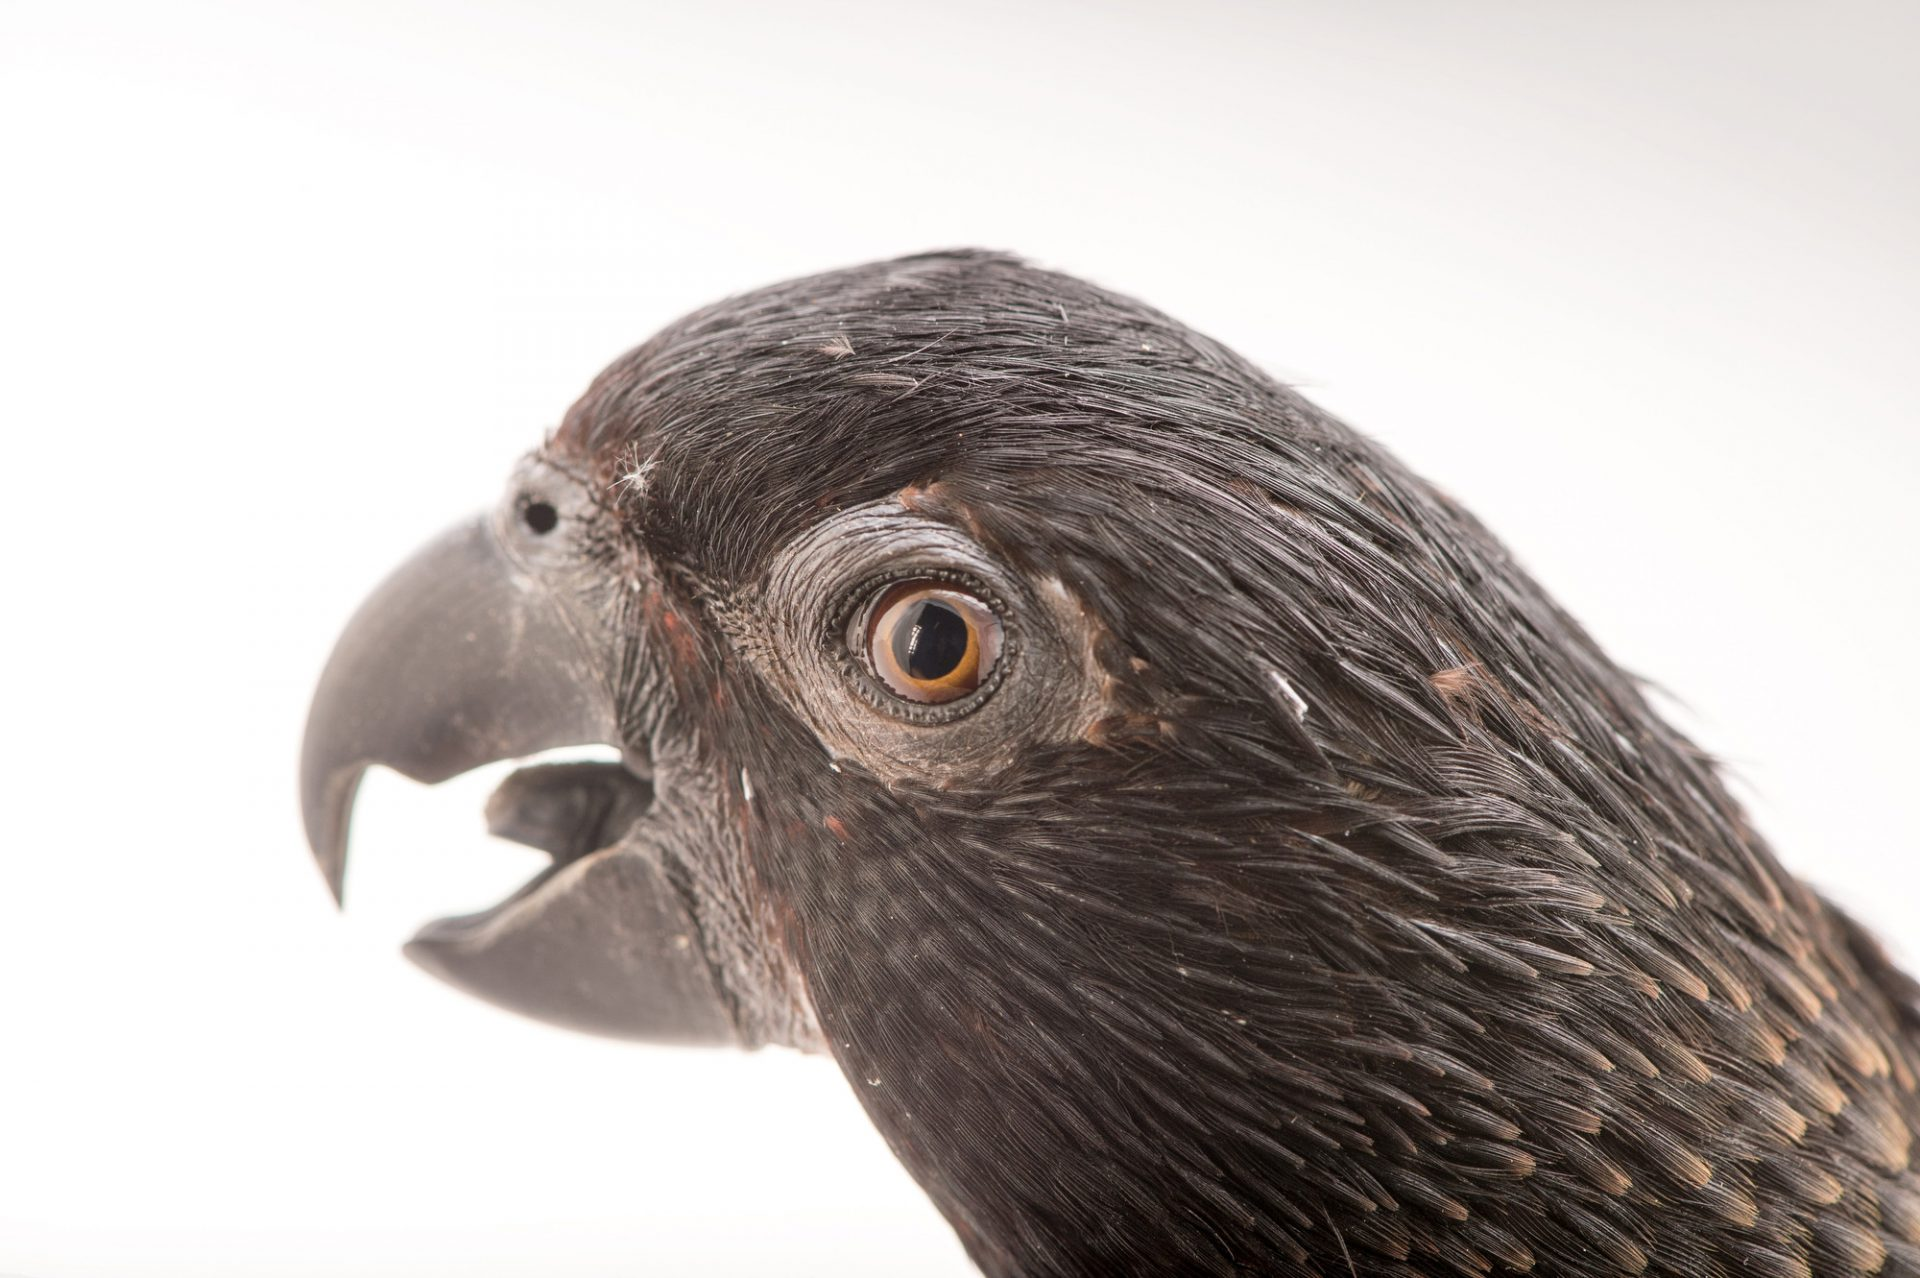 Picture of a Black lory (Chalcopsitta atra atra) at the Columbus Zoo.